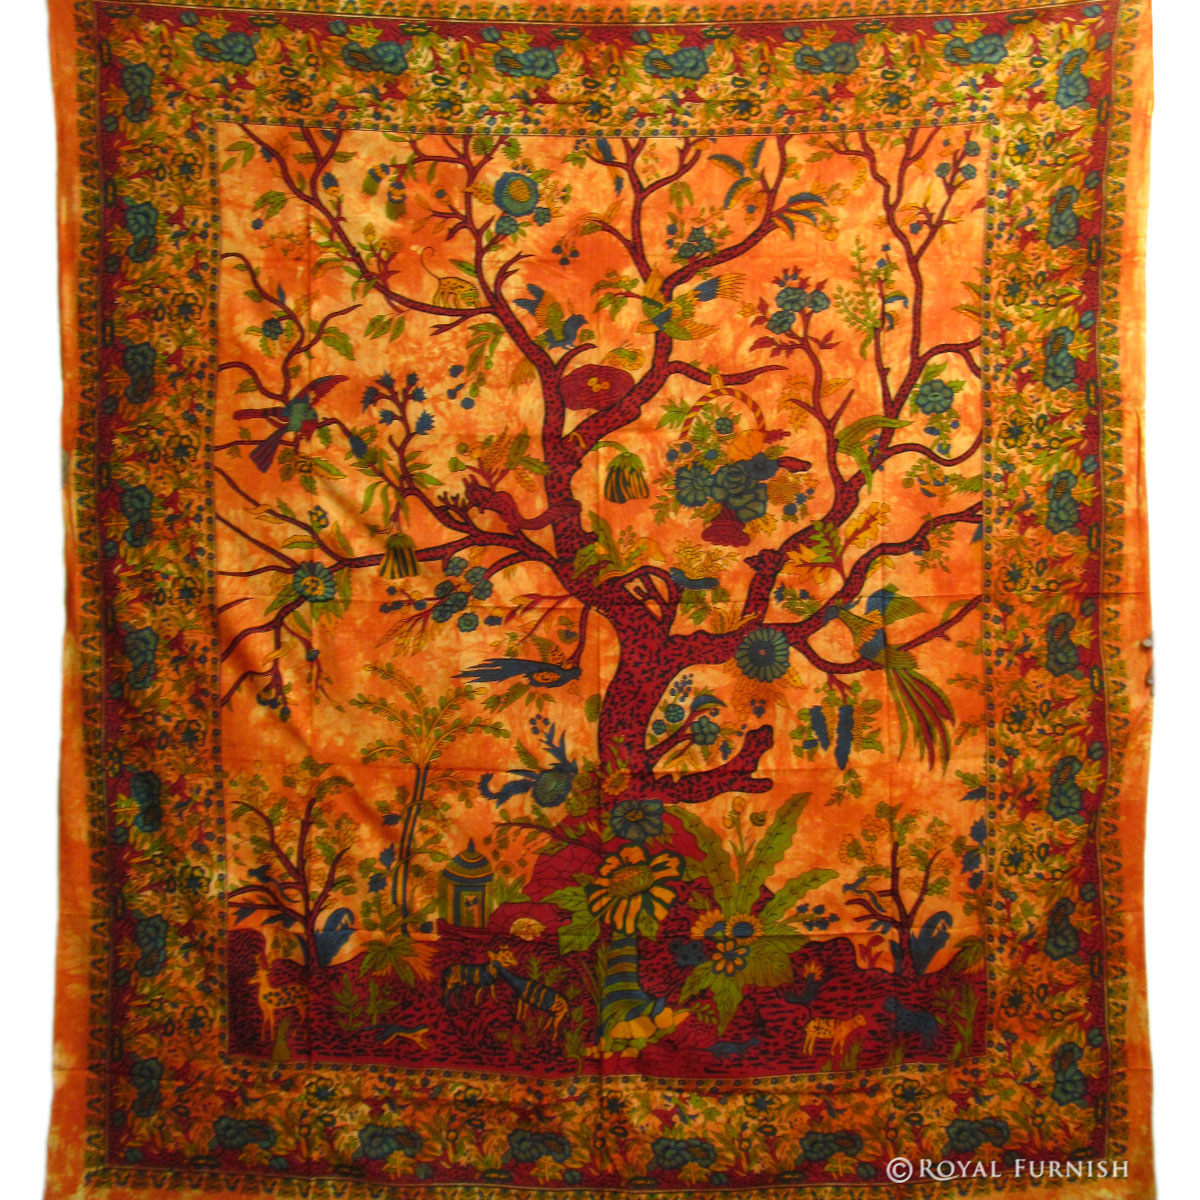 Queen Red Multi Purpose Tree Of Life Hippie Wall Hanging